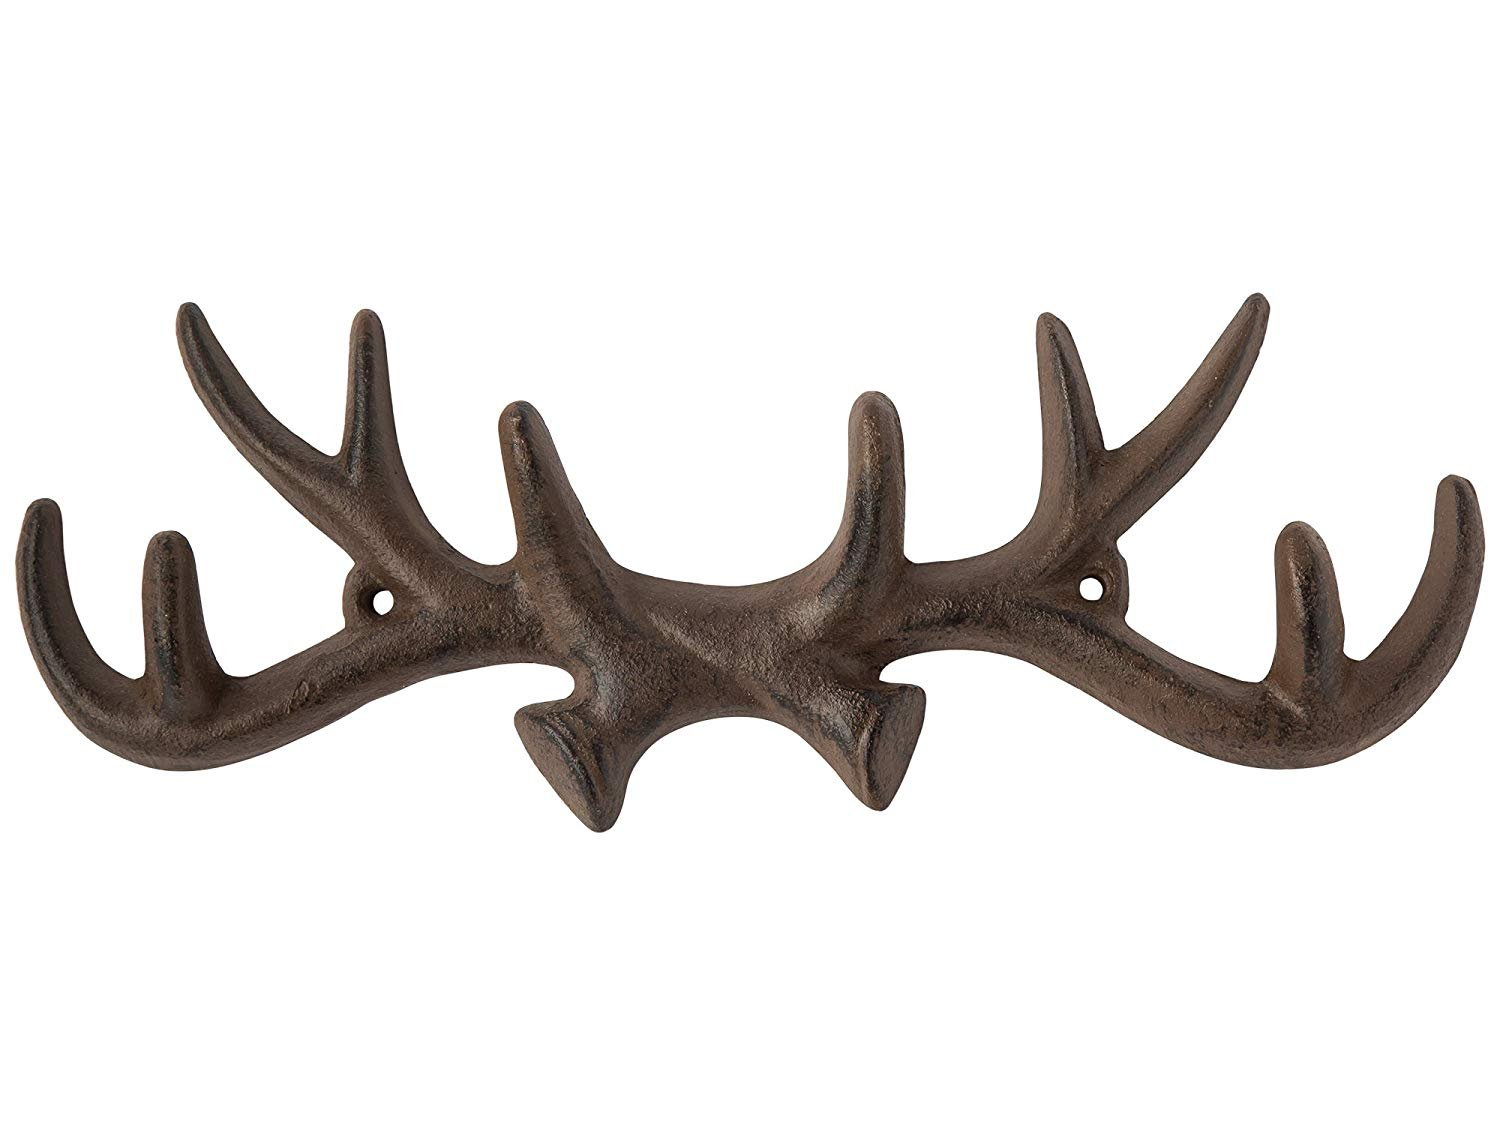 Vintage Cast Iron Deer Antlers Wall Hooks by Comfify | Antique Finish Metal Clothes Hanger Rack w/Hooks | Includes Screws and Anchors | in Antique White| (Antlers Hook CA-1507-25)